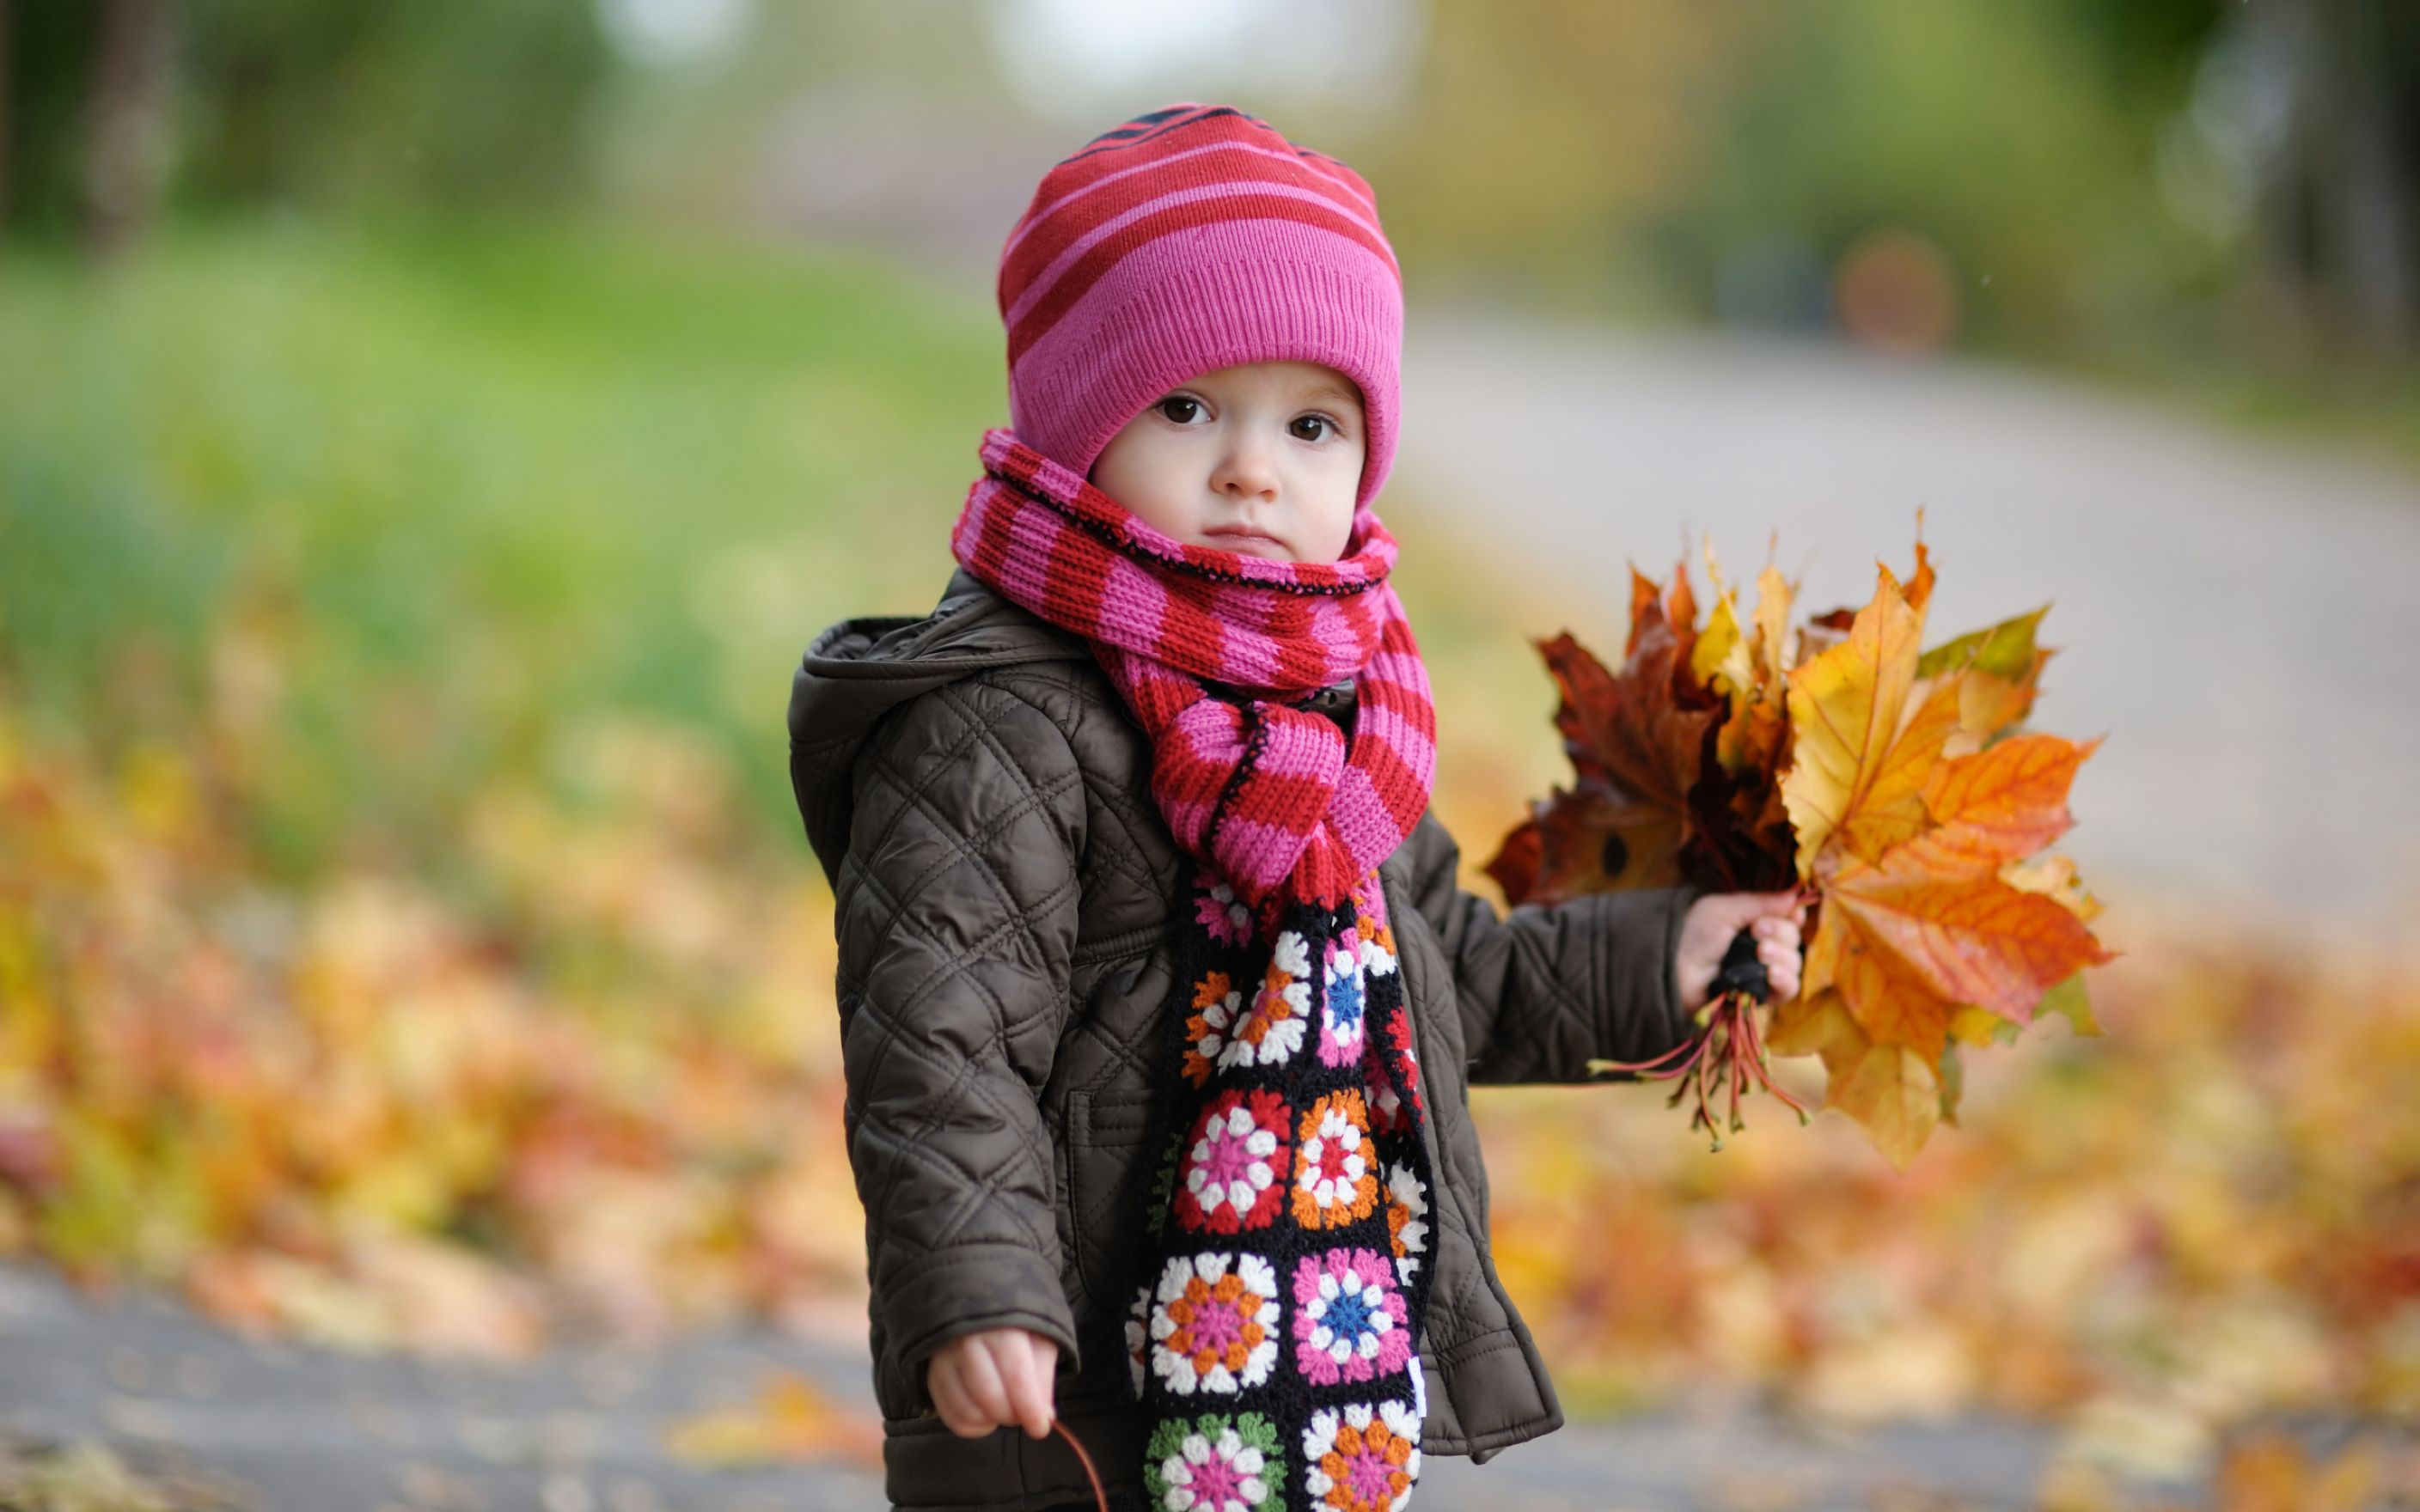 cute baby in autumn wide wallpaper: desktop hd wallpaper - download